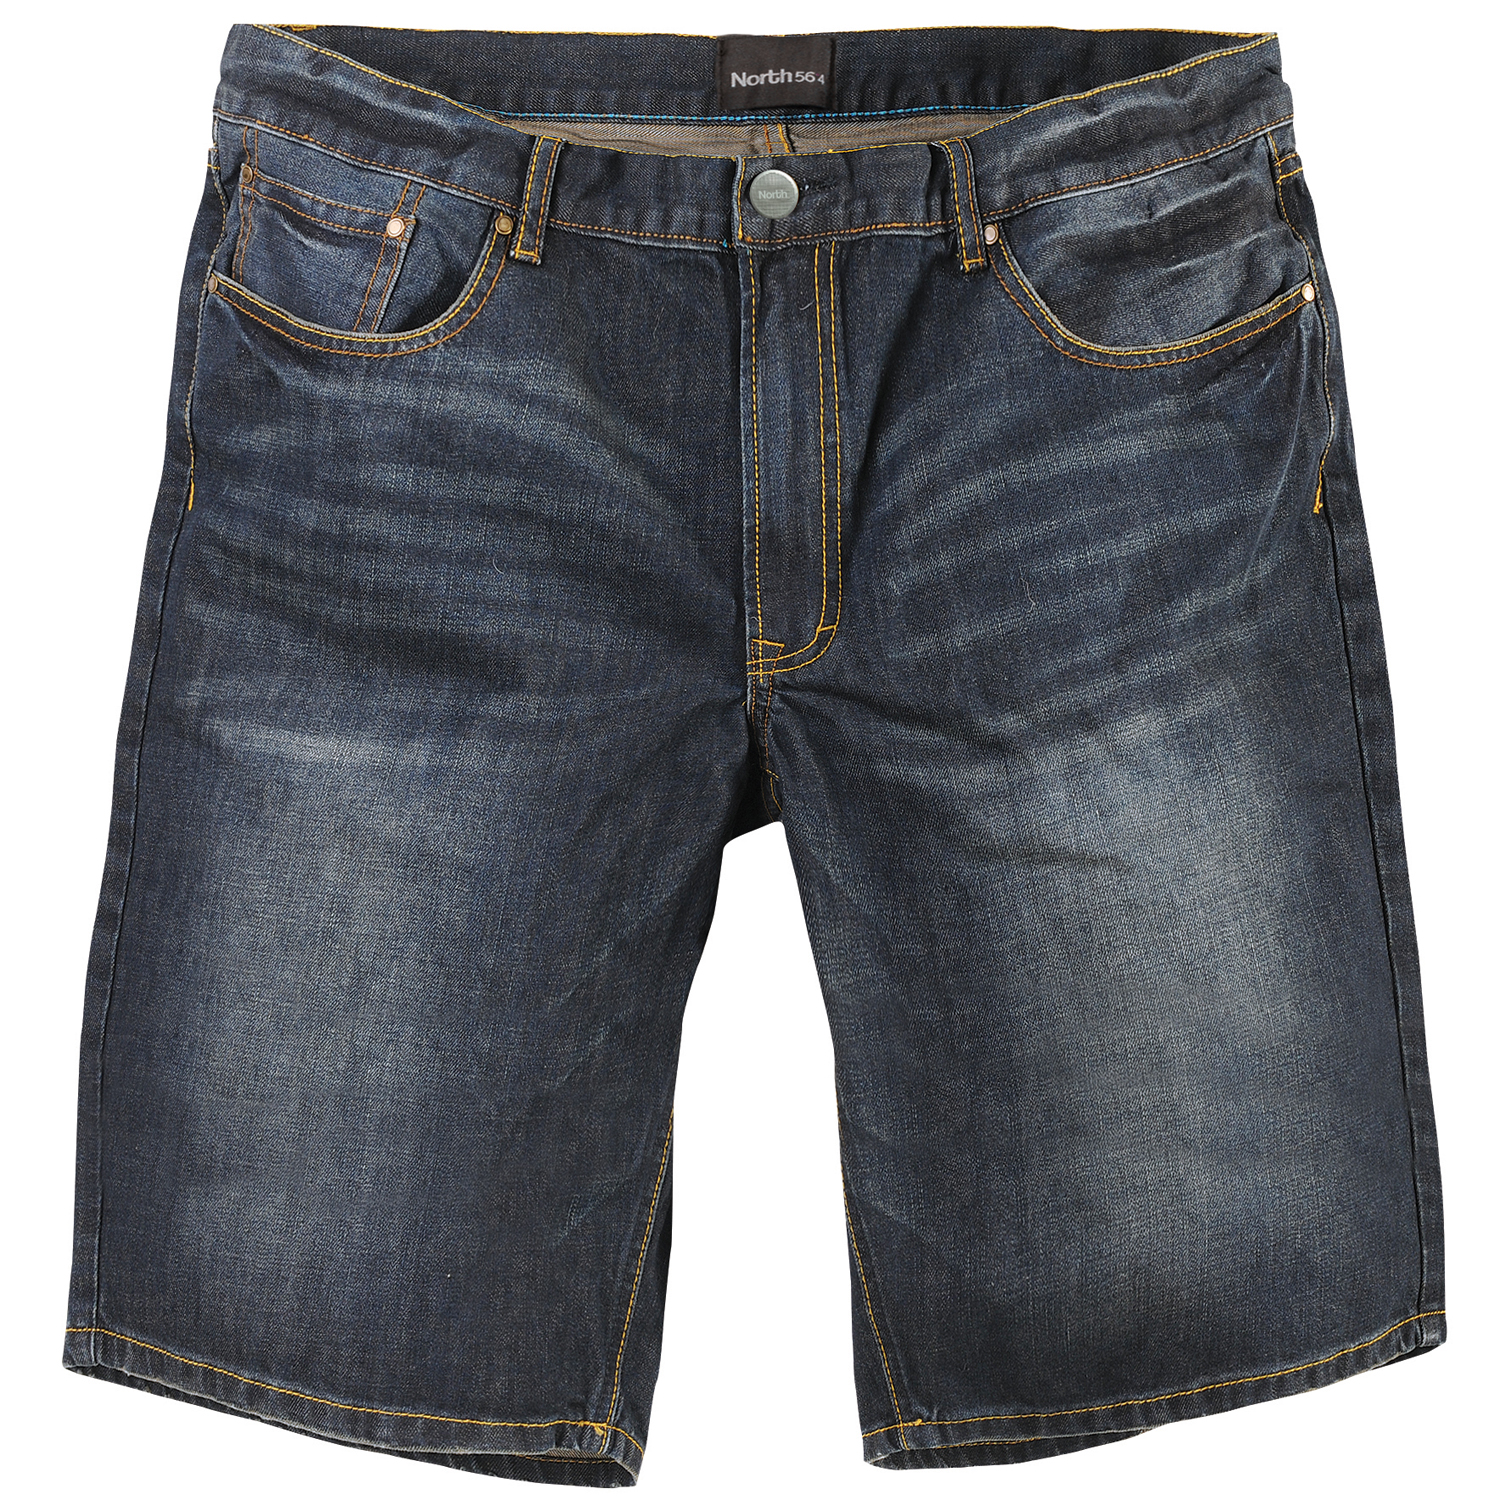 Detail Image to Blue denim long shorts for men by North 56°4 in oversizes up to W70